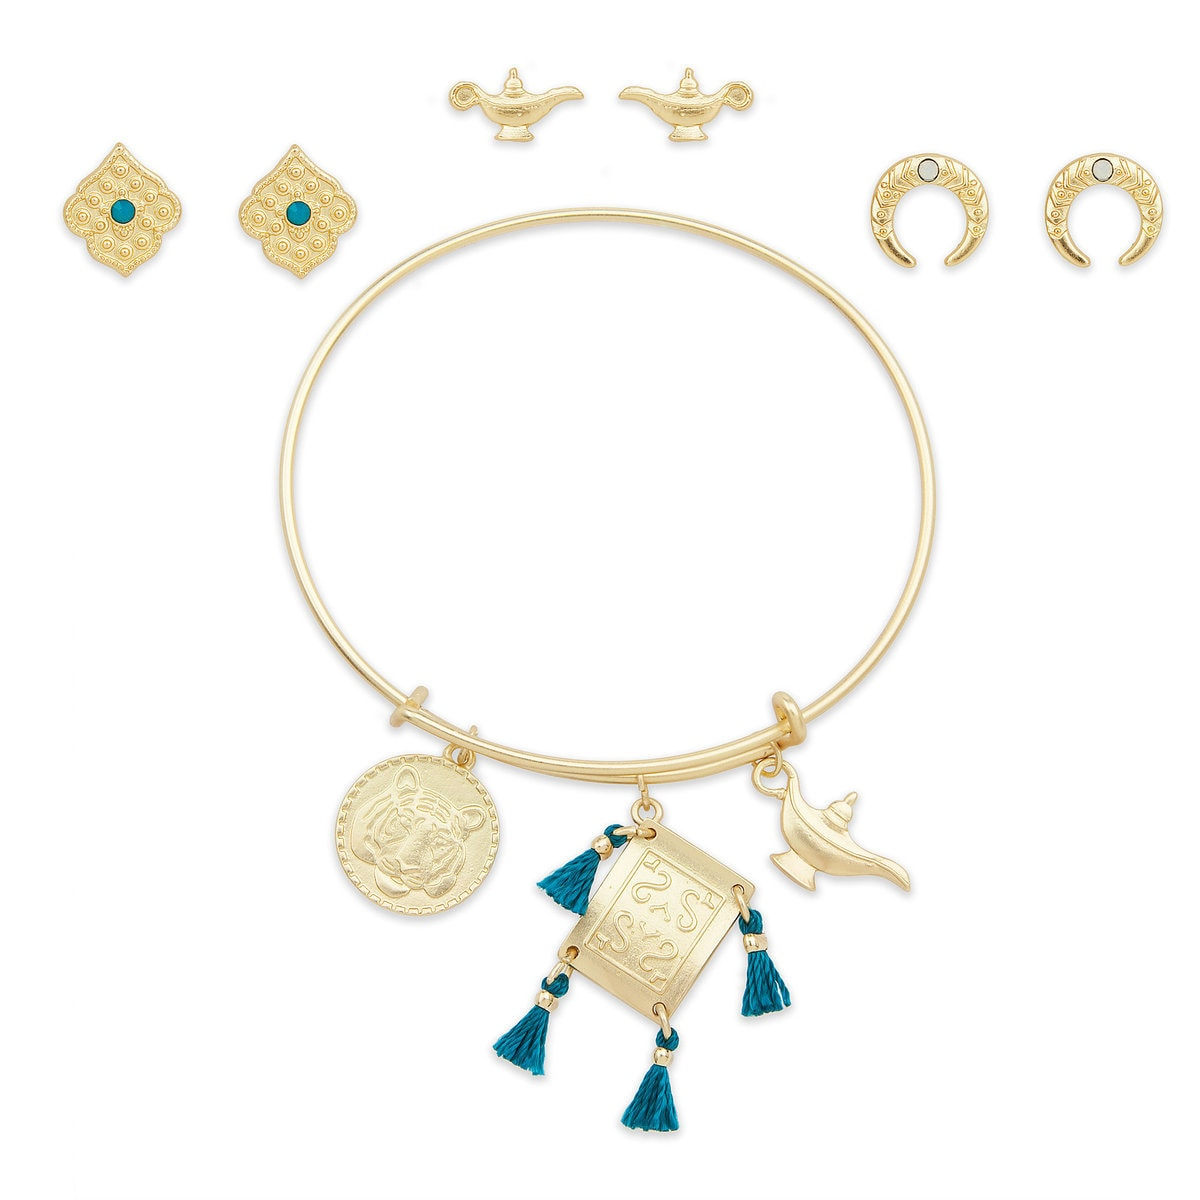 f2ee05fd4 Product Image of Aladdin Jewelry Set - Live Action Film # 1